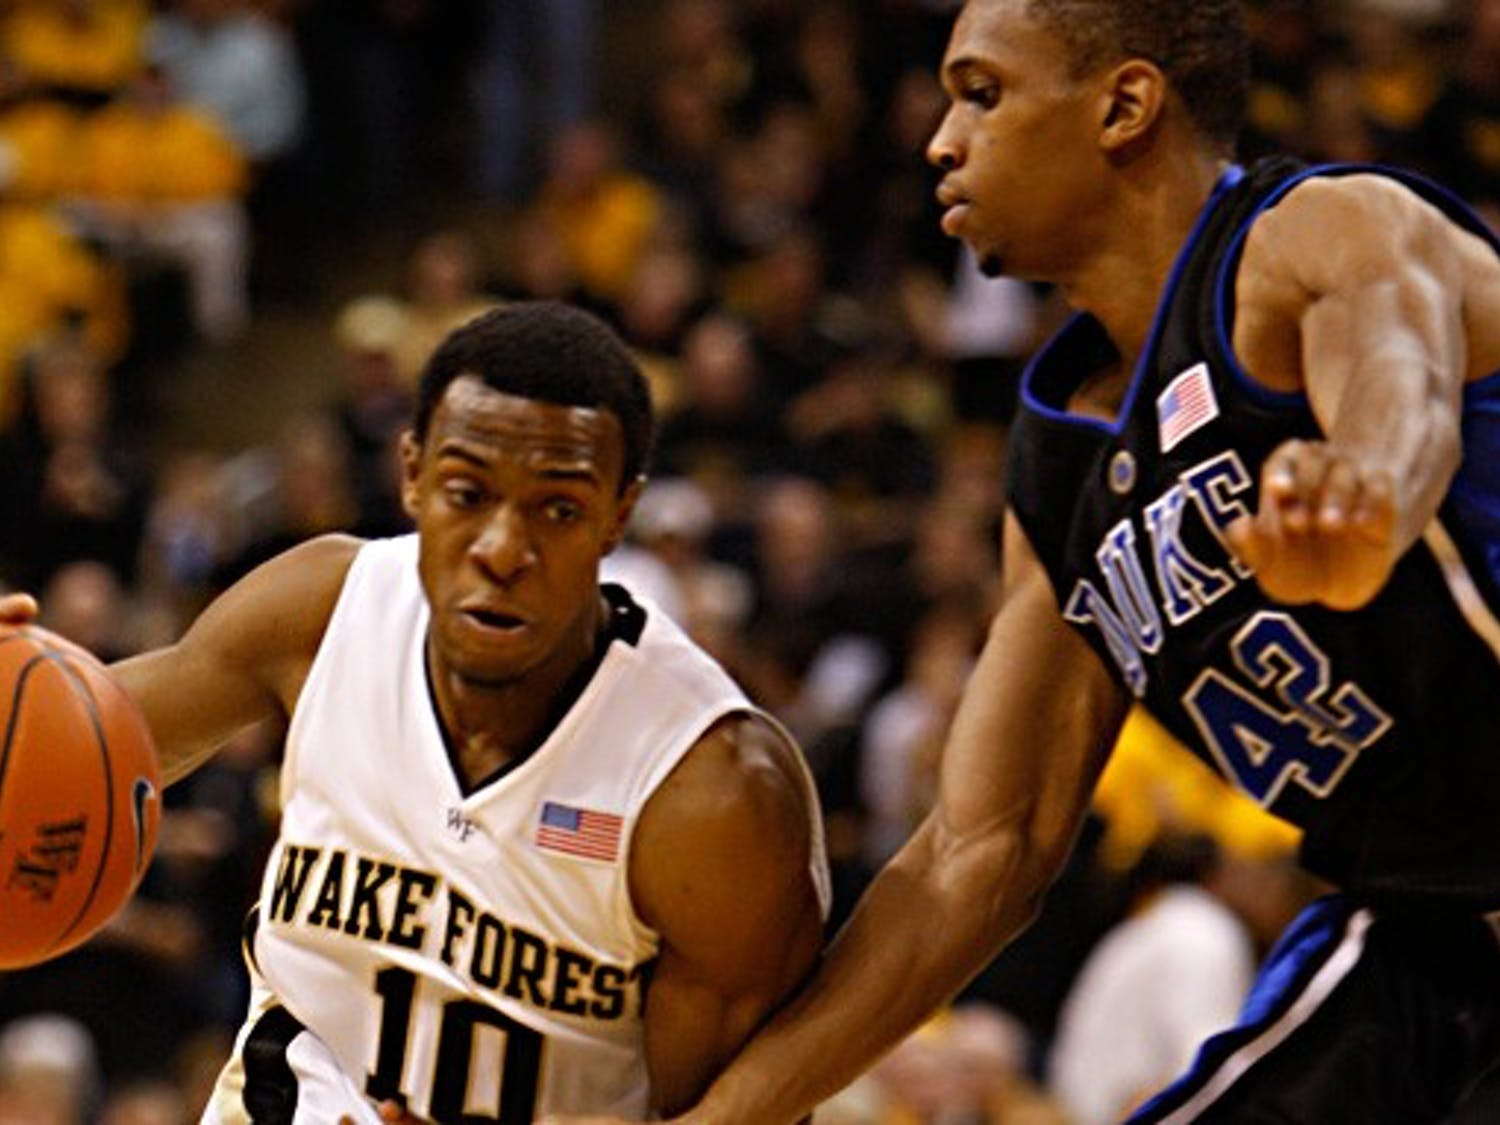 Wake Forest guard Ishmael Smith has helped propel the Demon Deacons, one of only two ACC teams in the national rankings, into the AP Top 25.